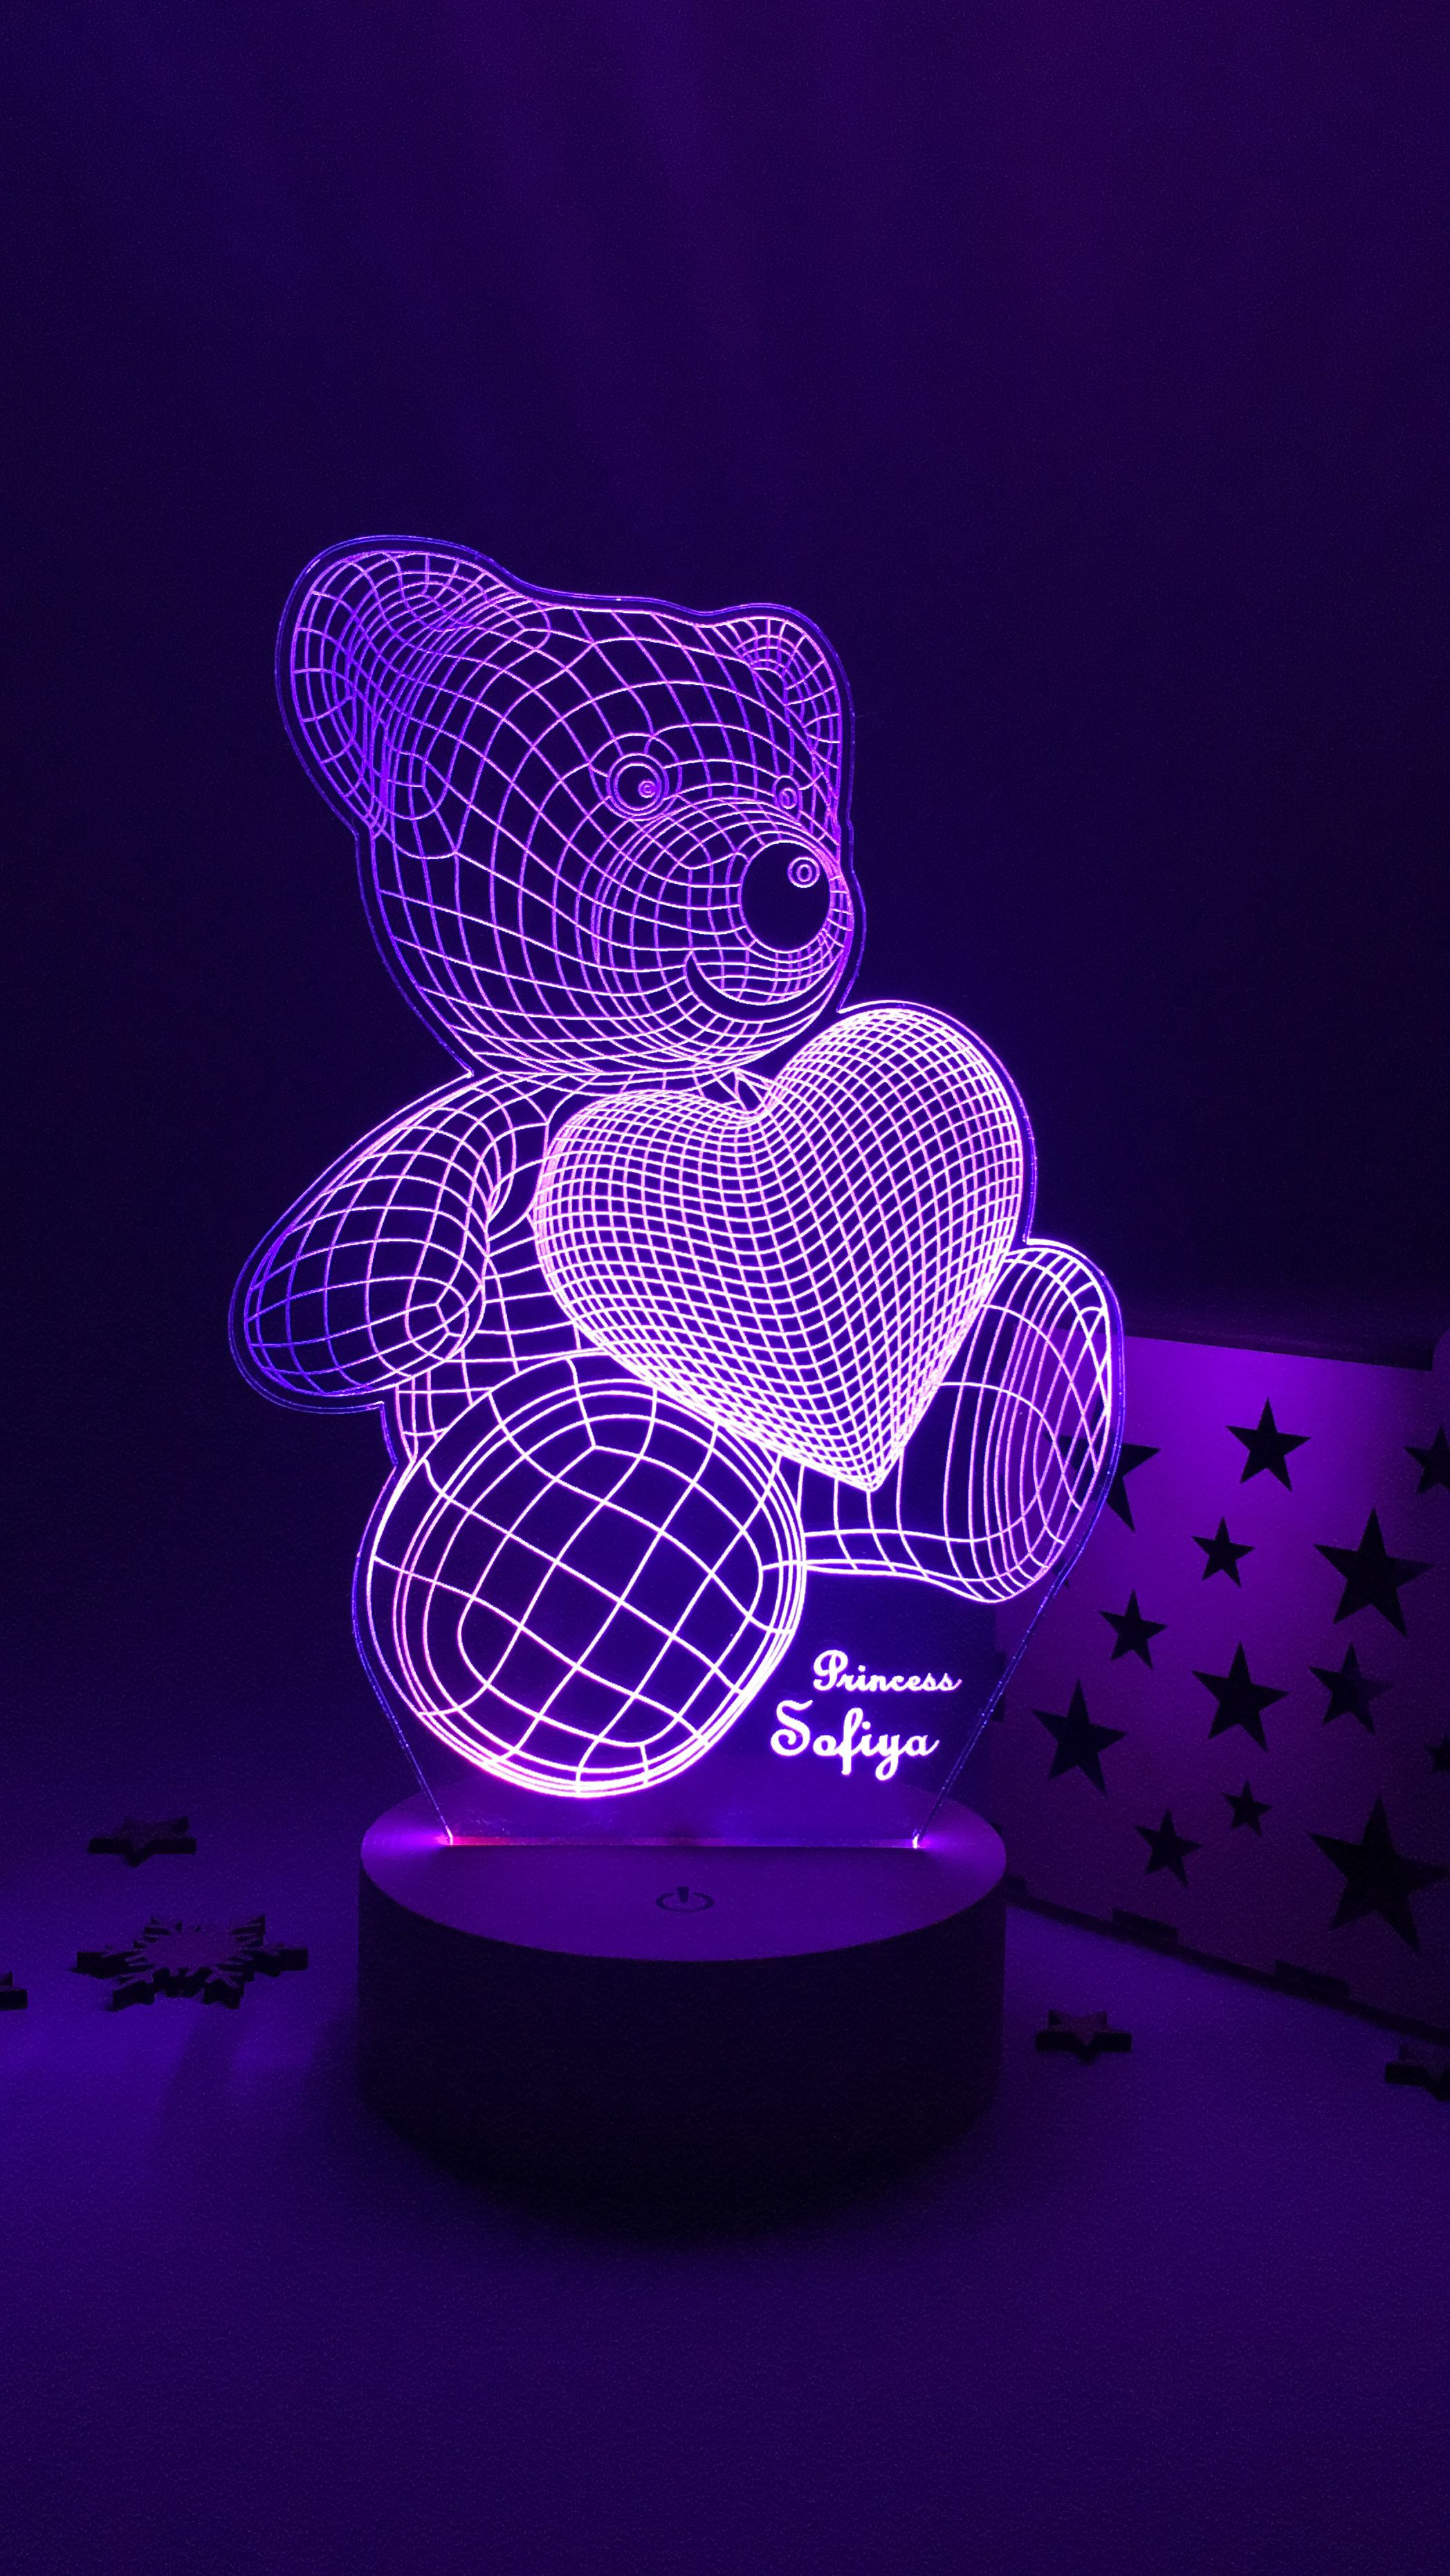 Cute Bear 3d Effect Led Lamp With Personal Text Bedroom Table Etsy Lamp Led Beautiful Lamp